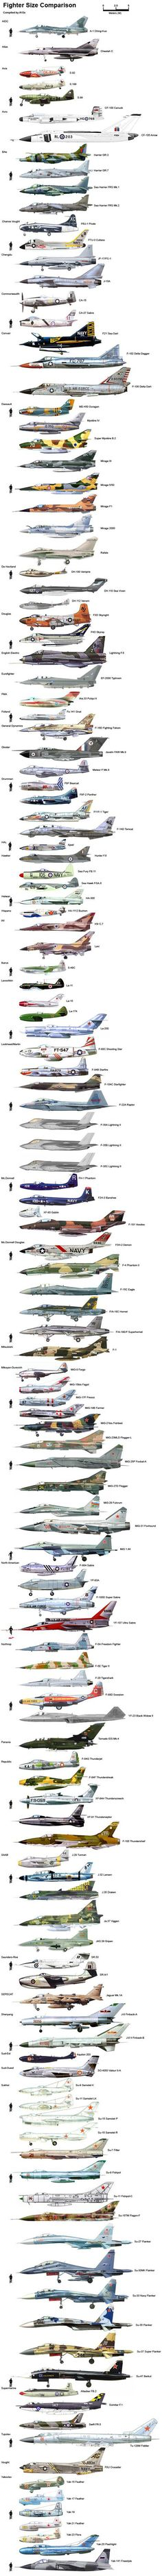 Fighter Size Comparison